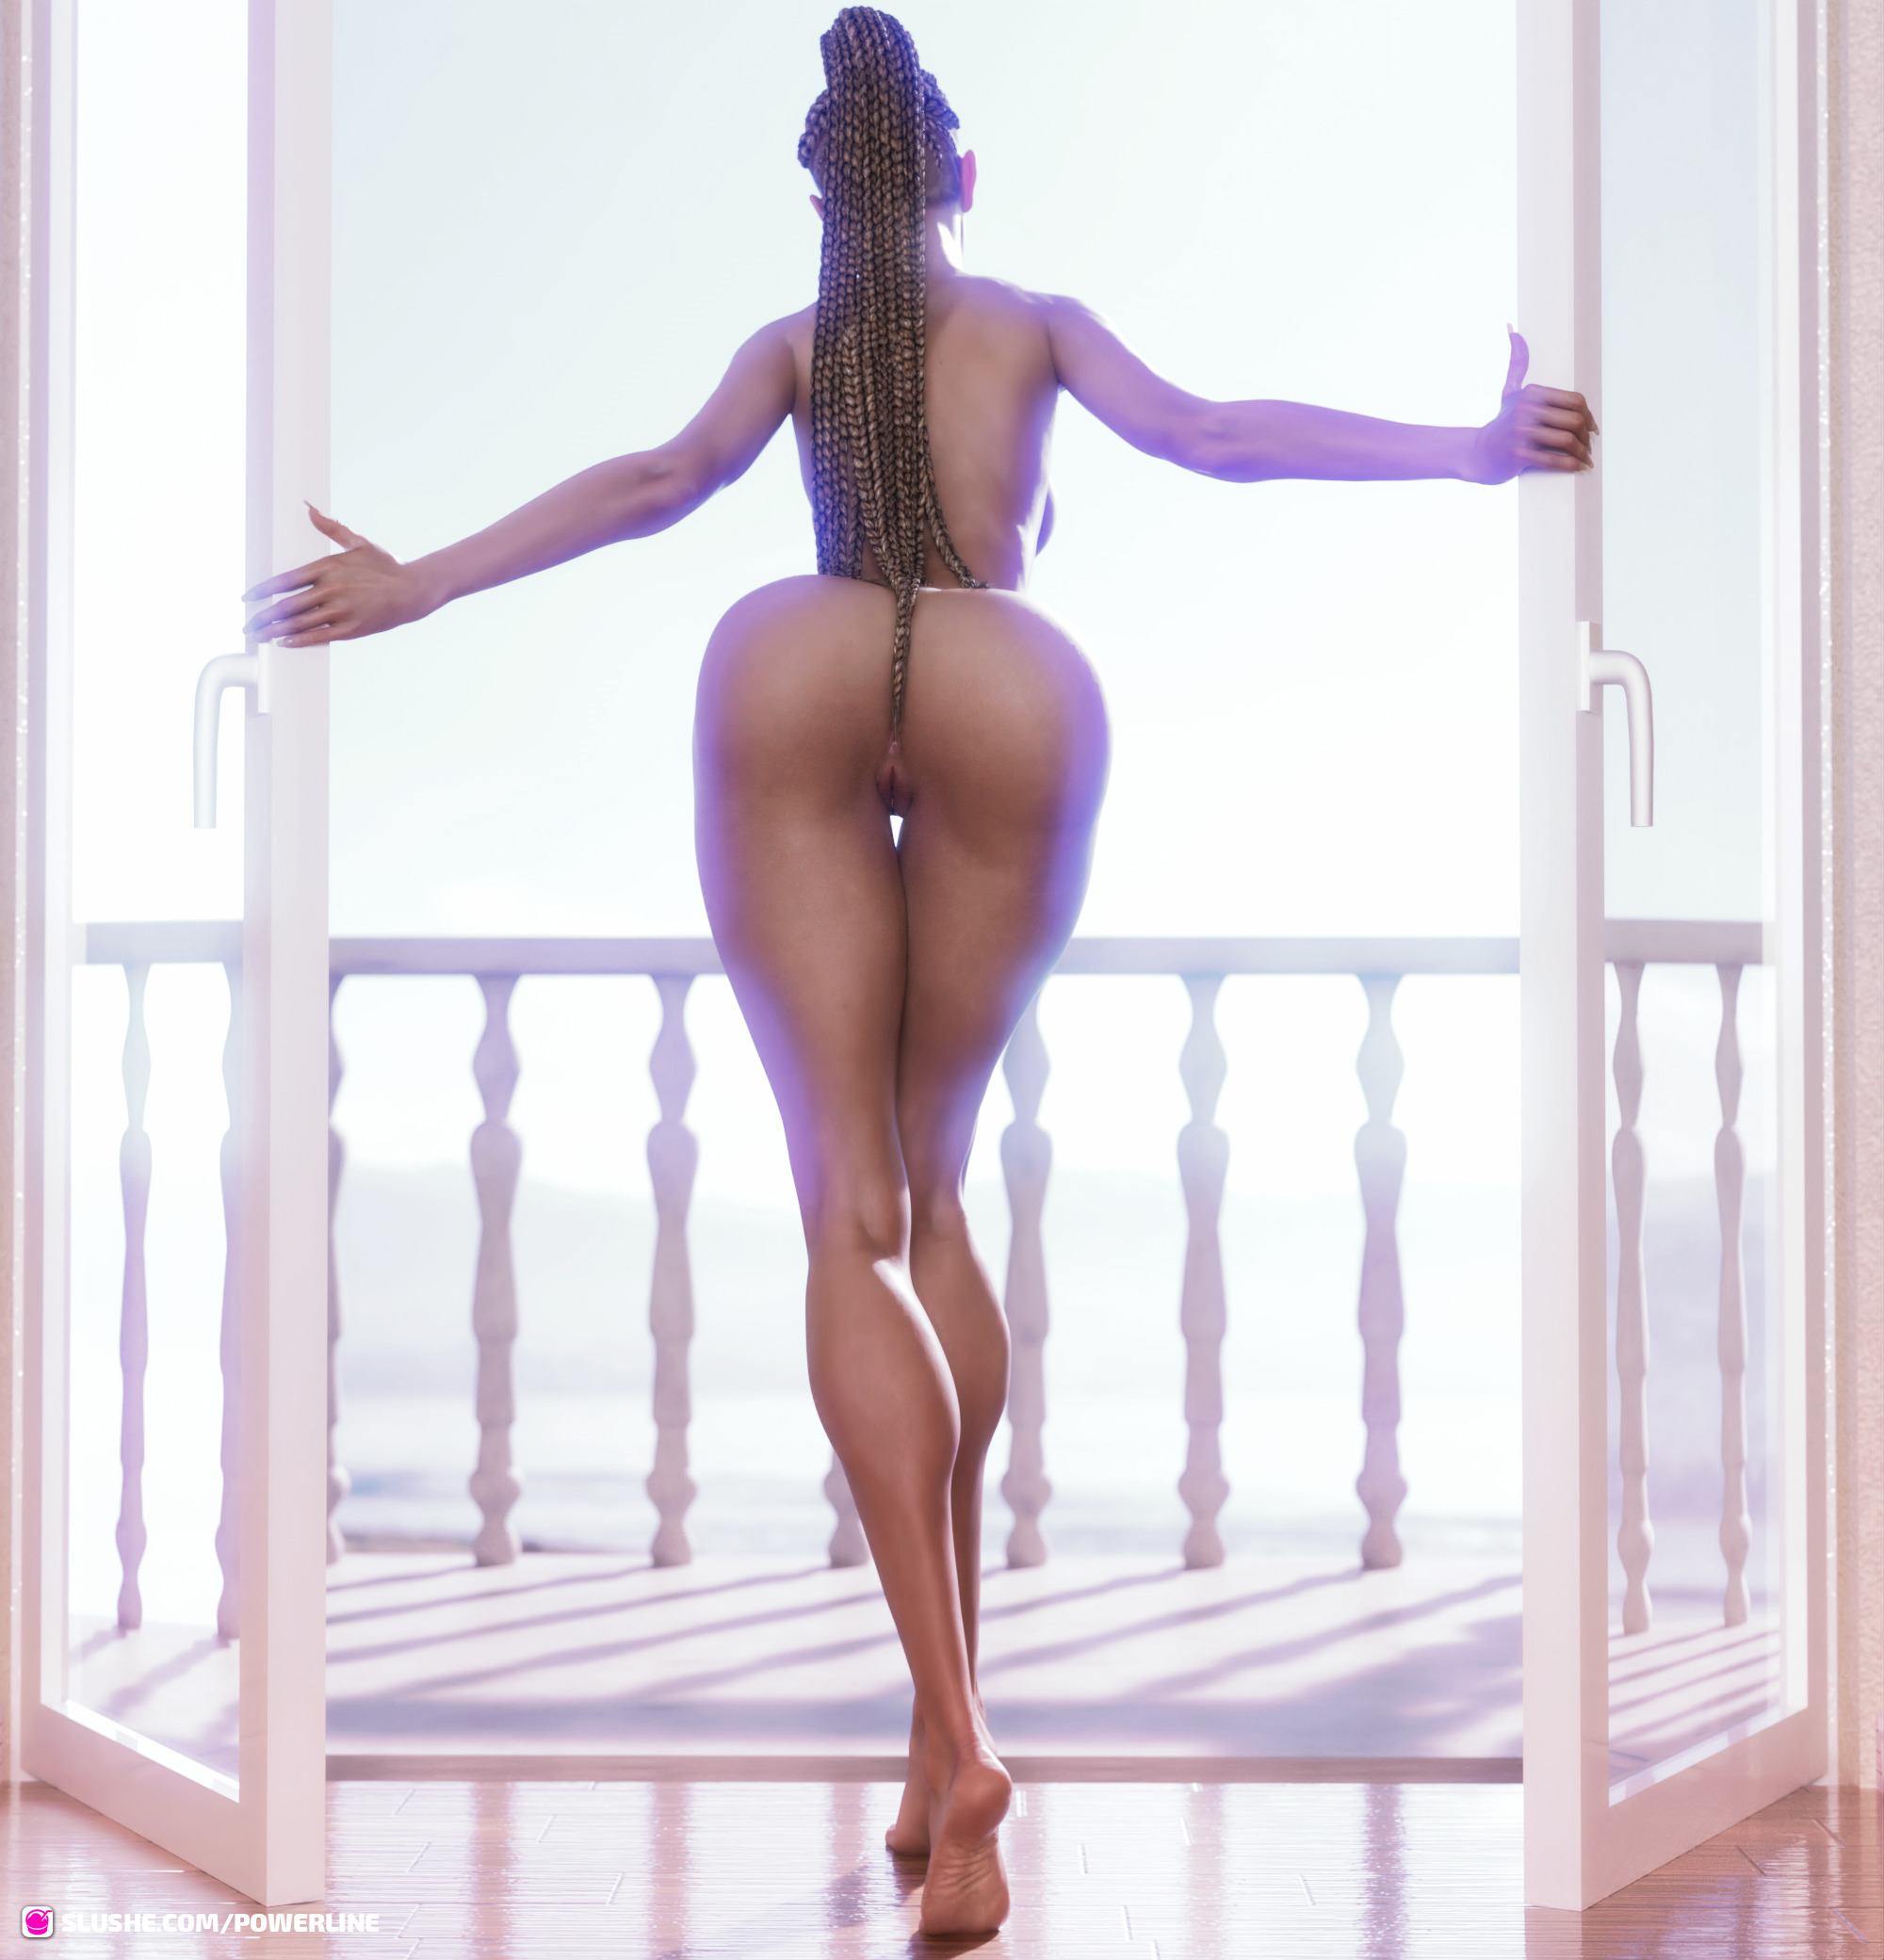 Great view